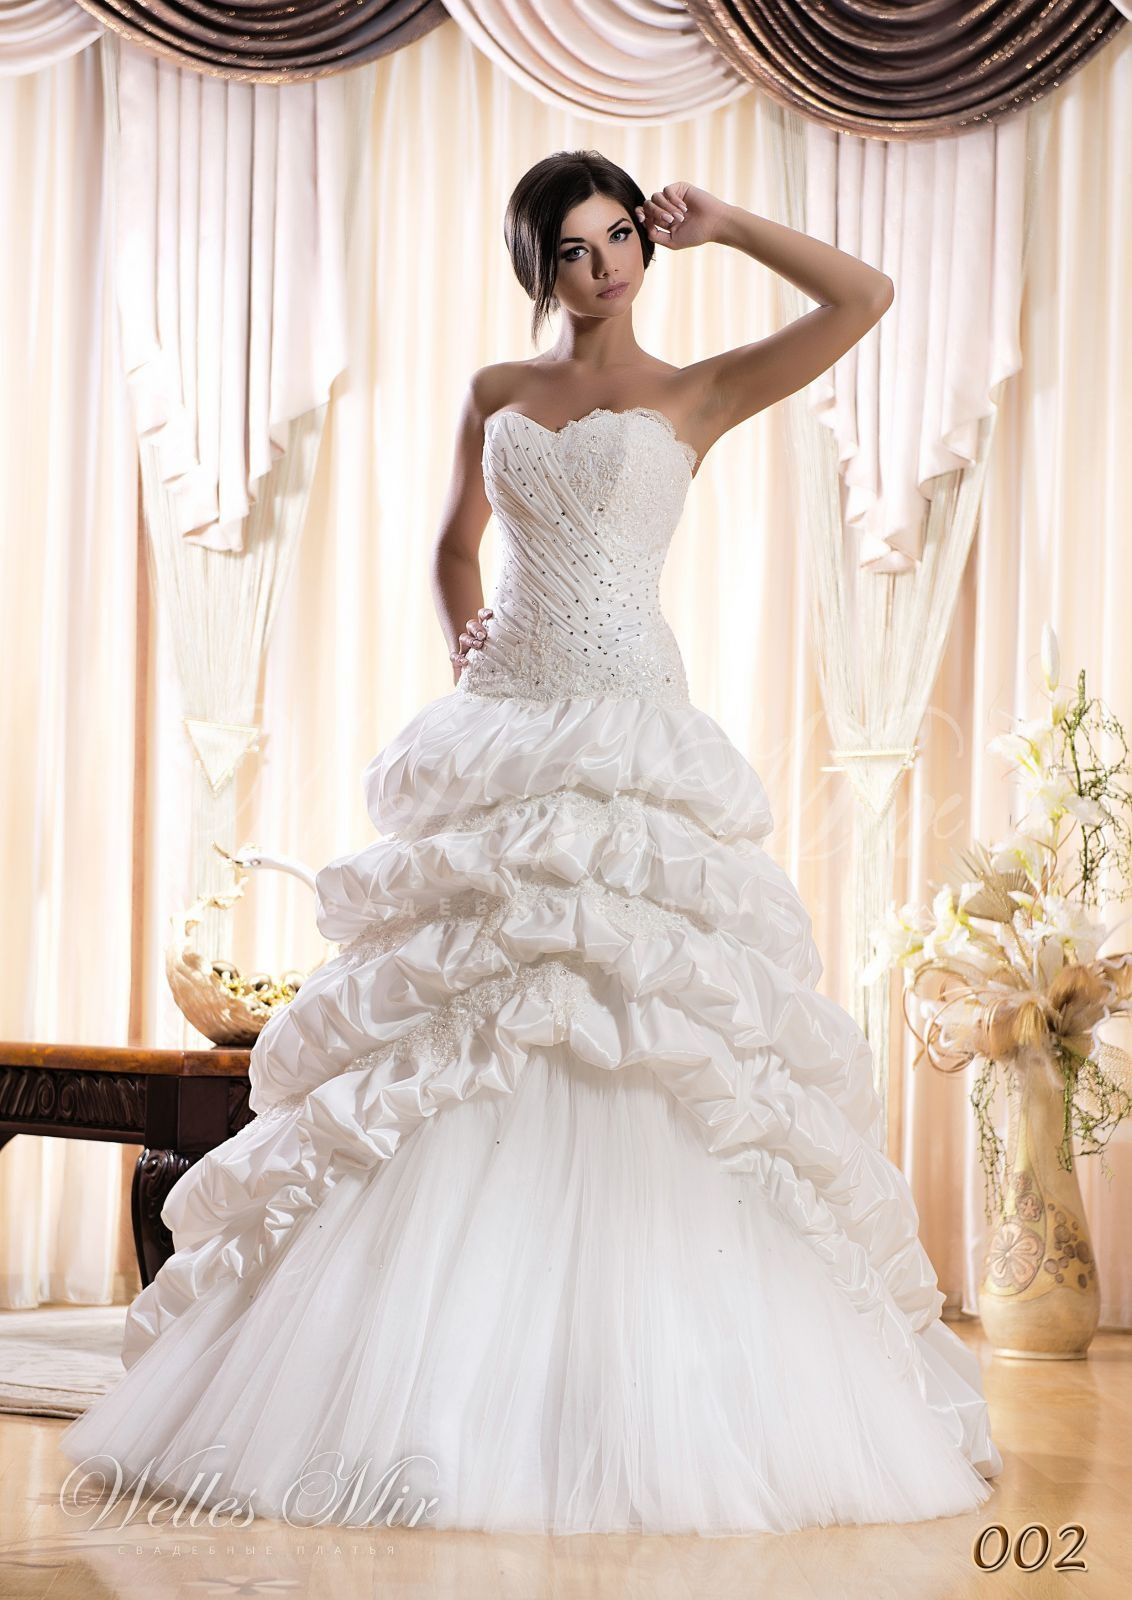 Wedding dresses 002